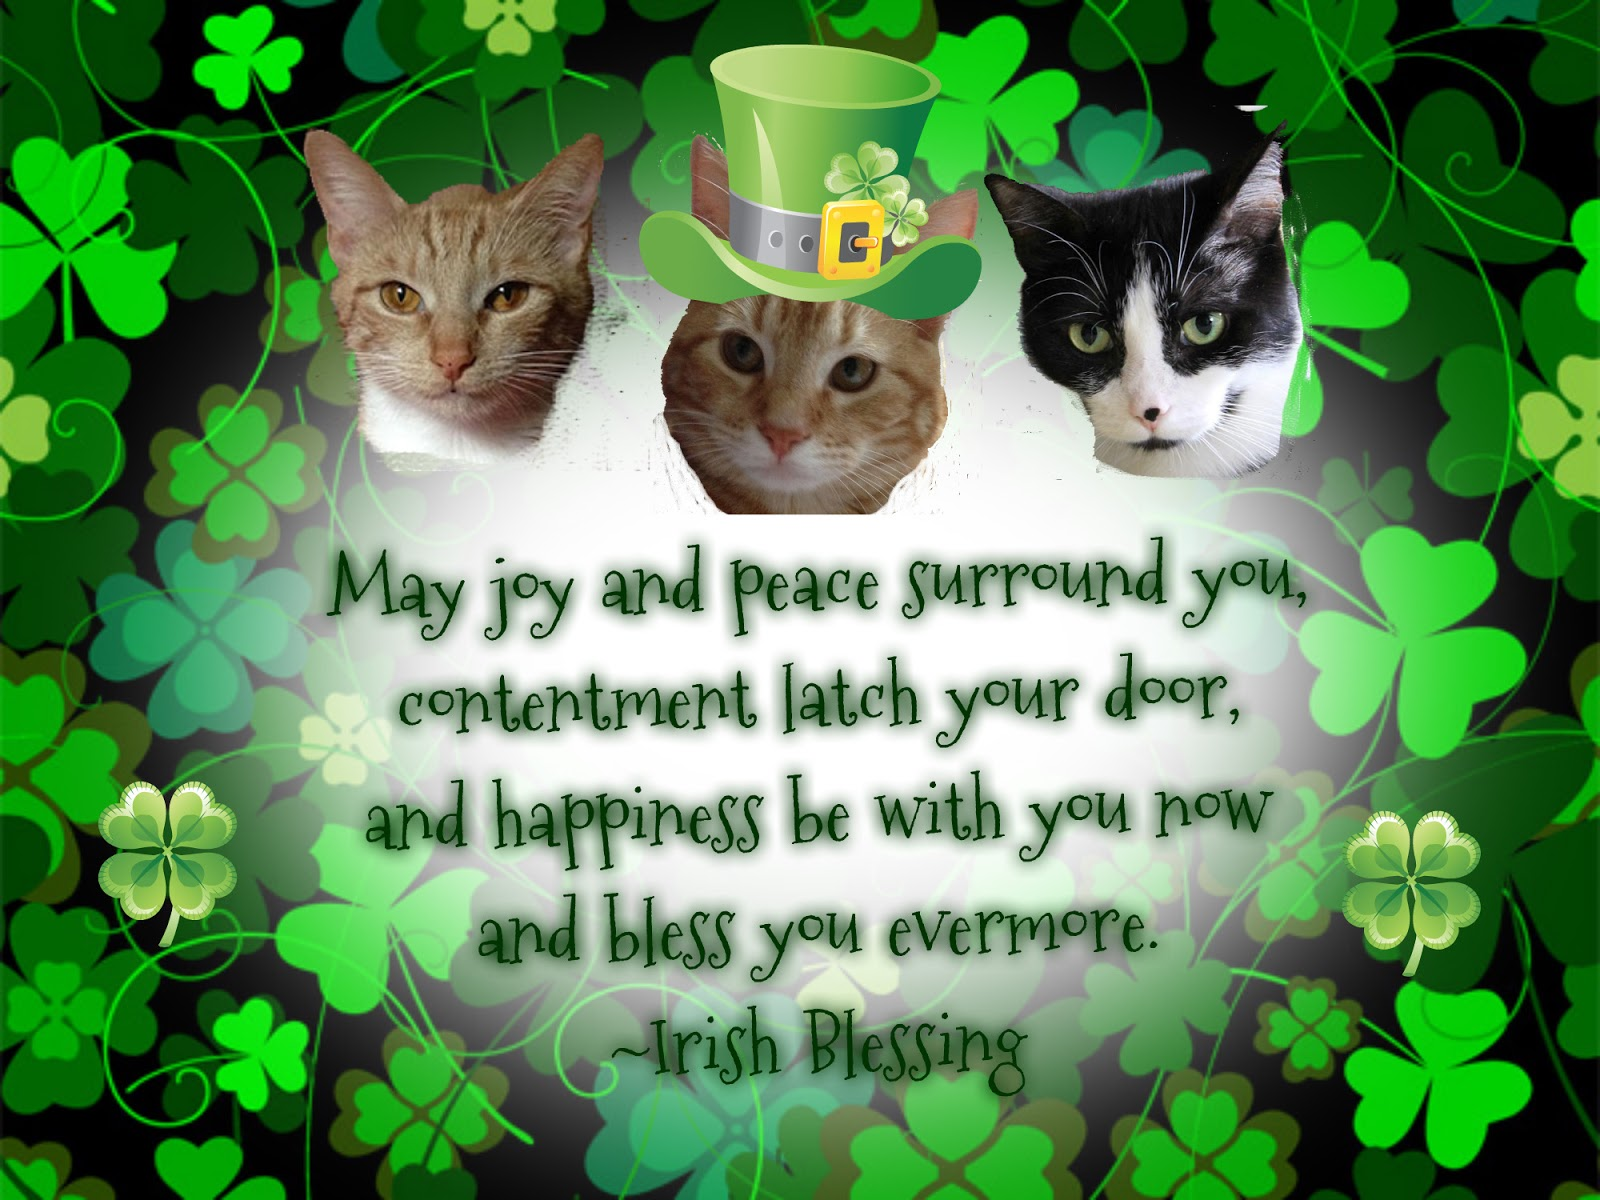 GF1MT87 St Patricks Day Cat Wallpaper 1600x1200   Picseriocom 1600x1200